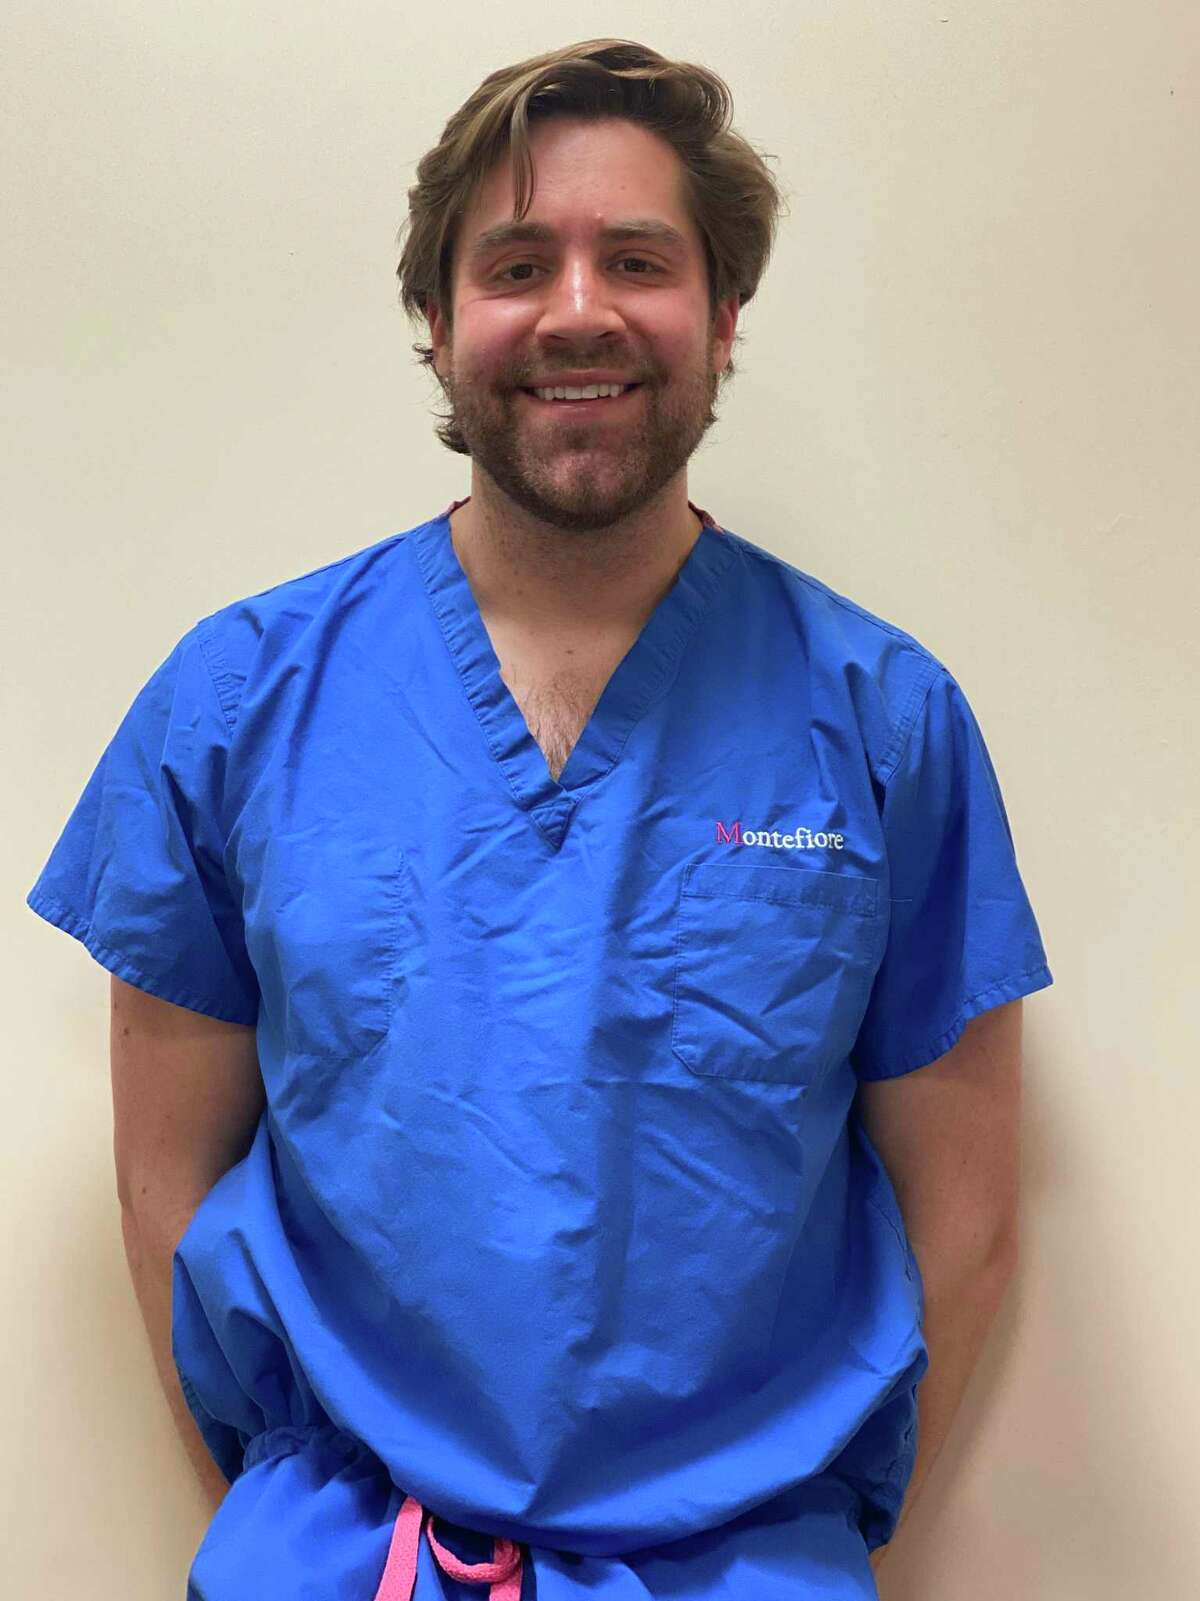 In the second year of his psychiatry residence, Ridgefield resident Ryan Flanagan was temporarily moved to a medical floor to help treat COVID-19 patients at Montefiore Medical Center in the Bronx.